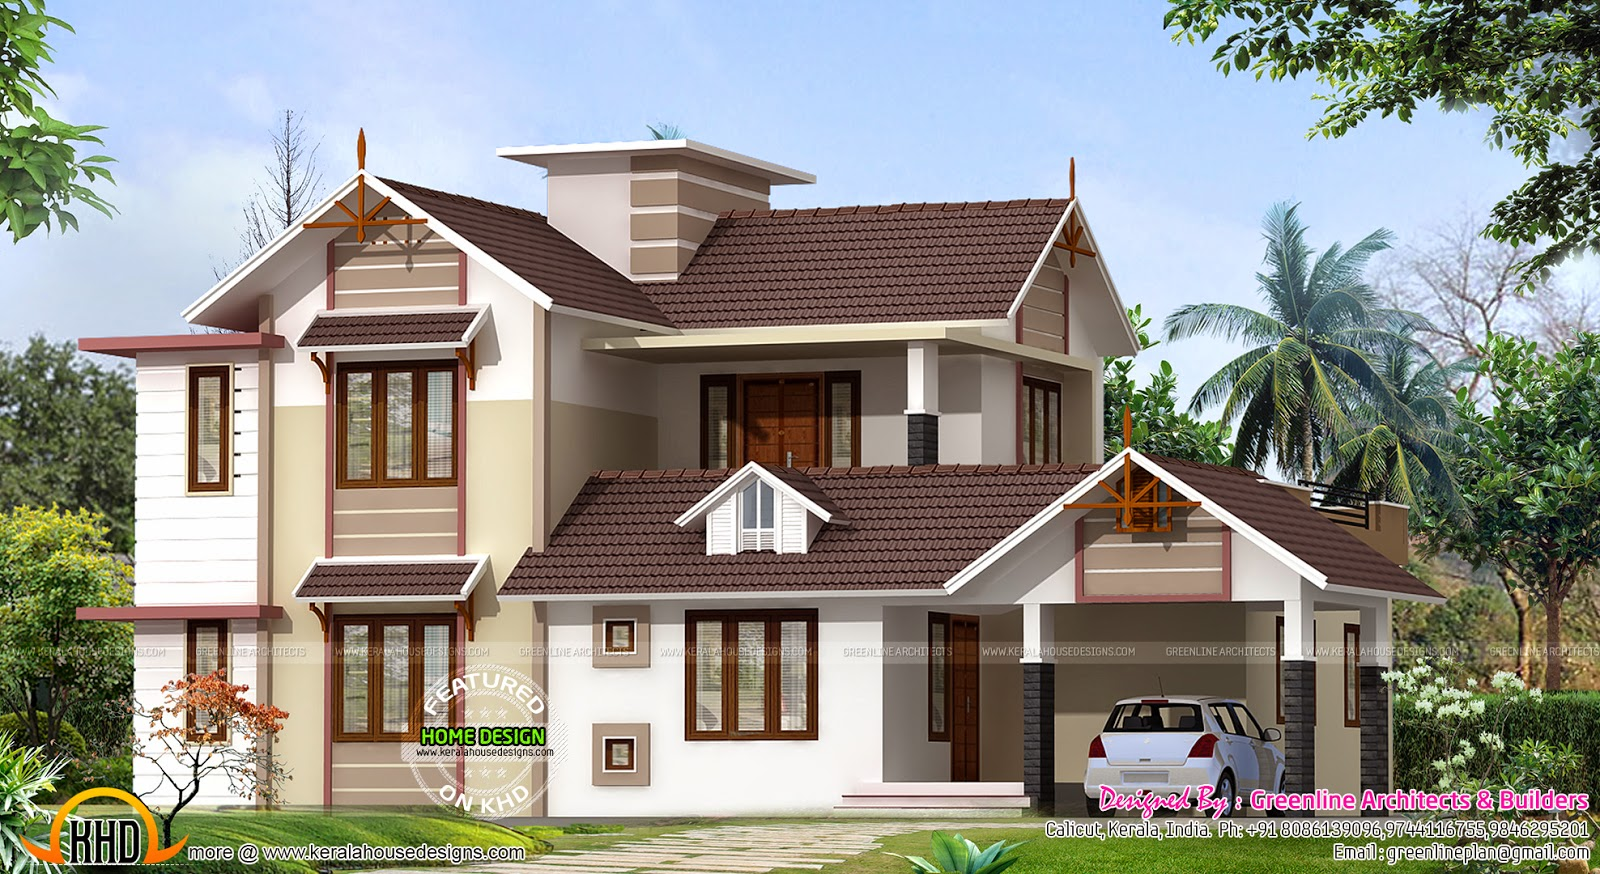 2400 sq ft new house design kerala home design and floor for New home blueprints photos